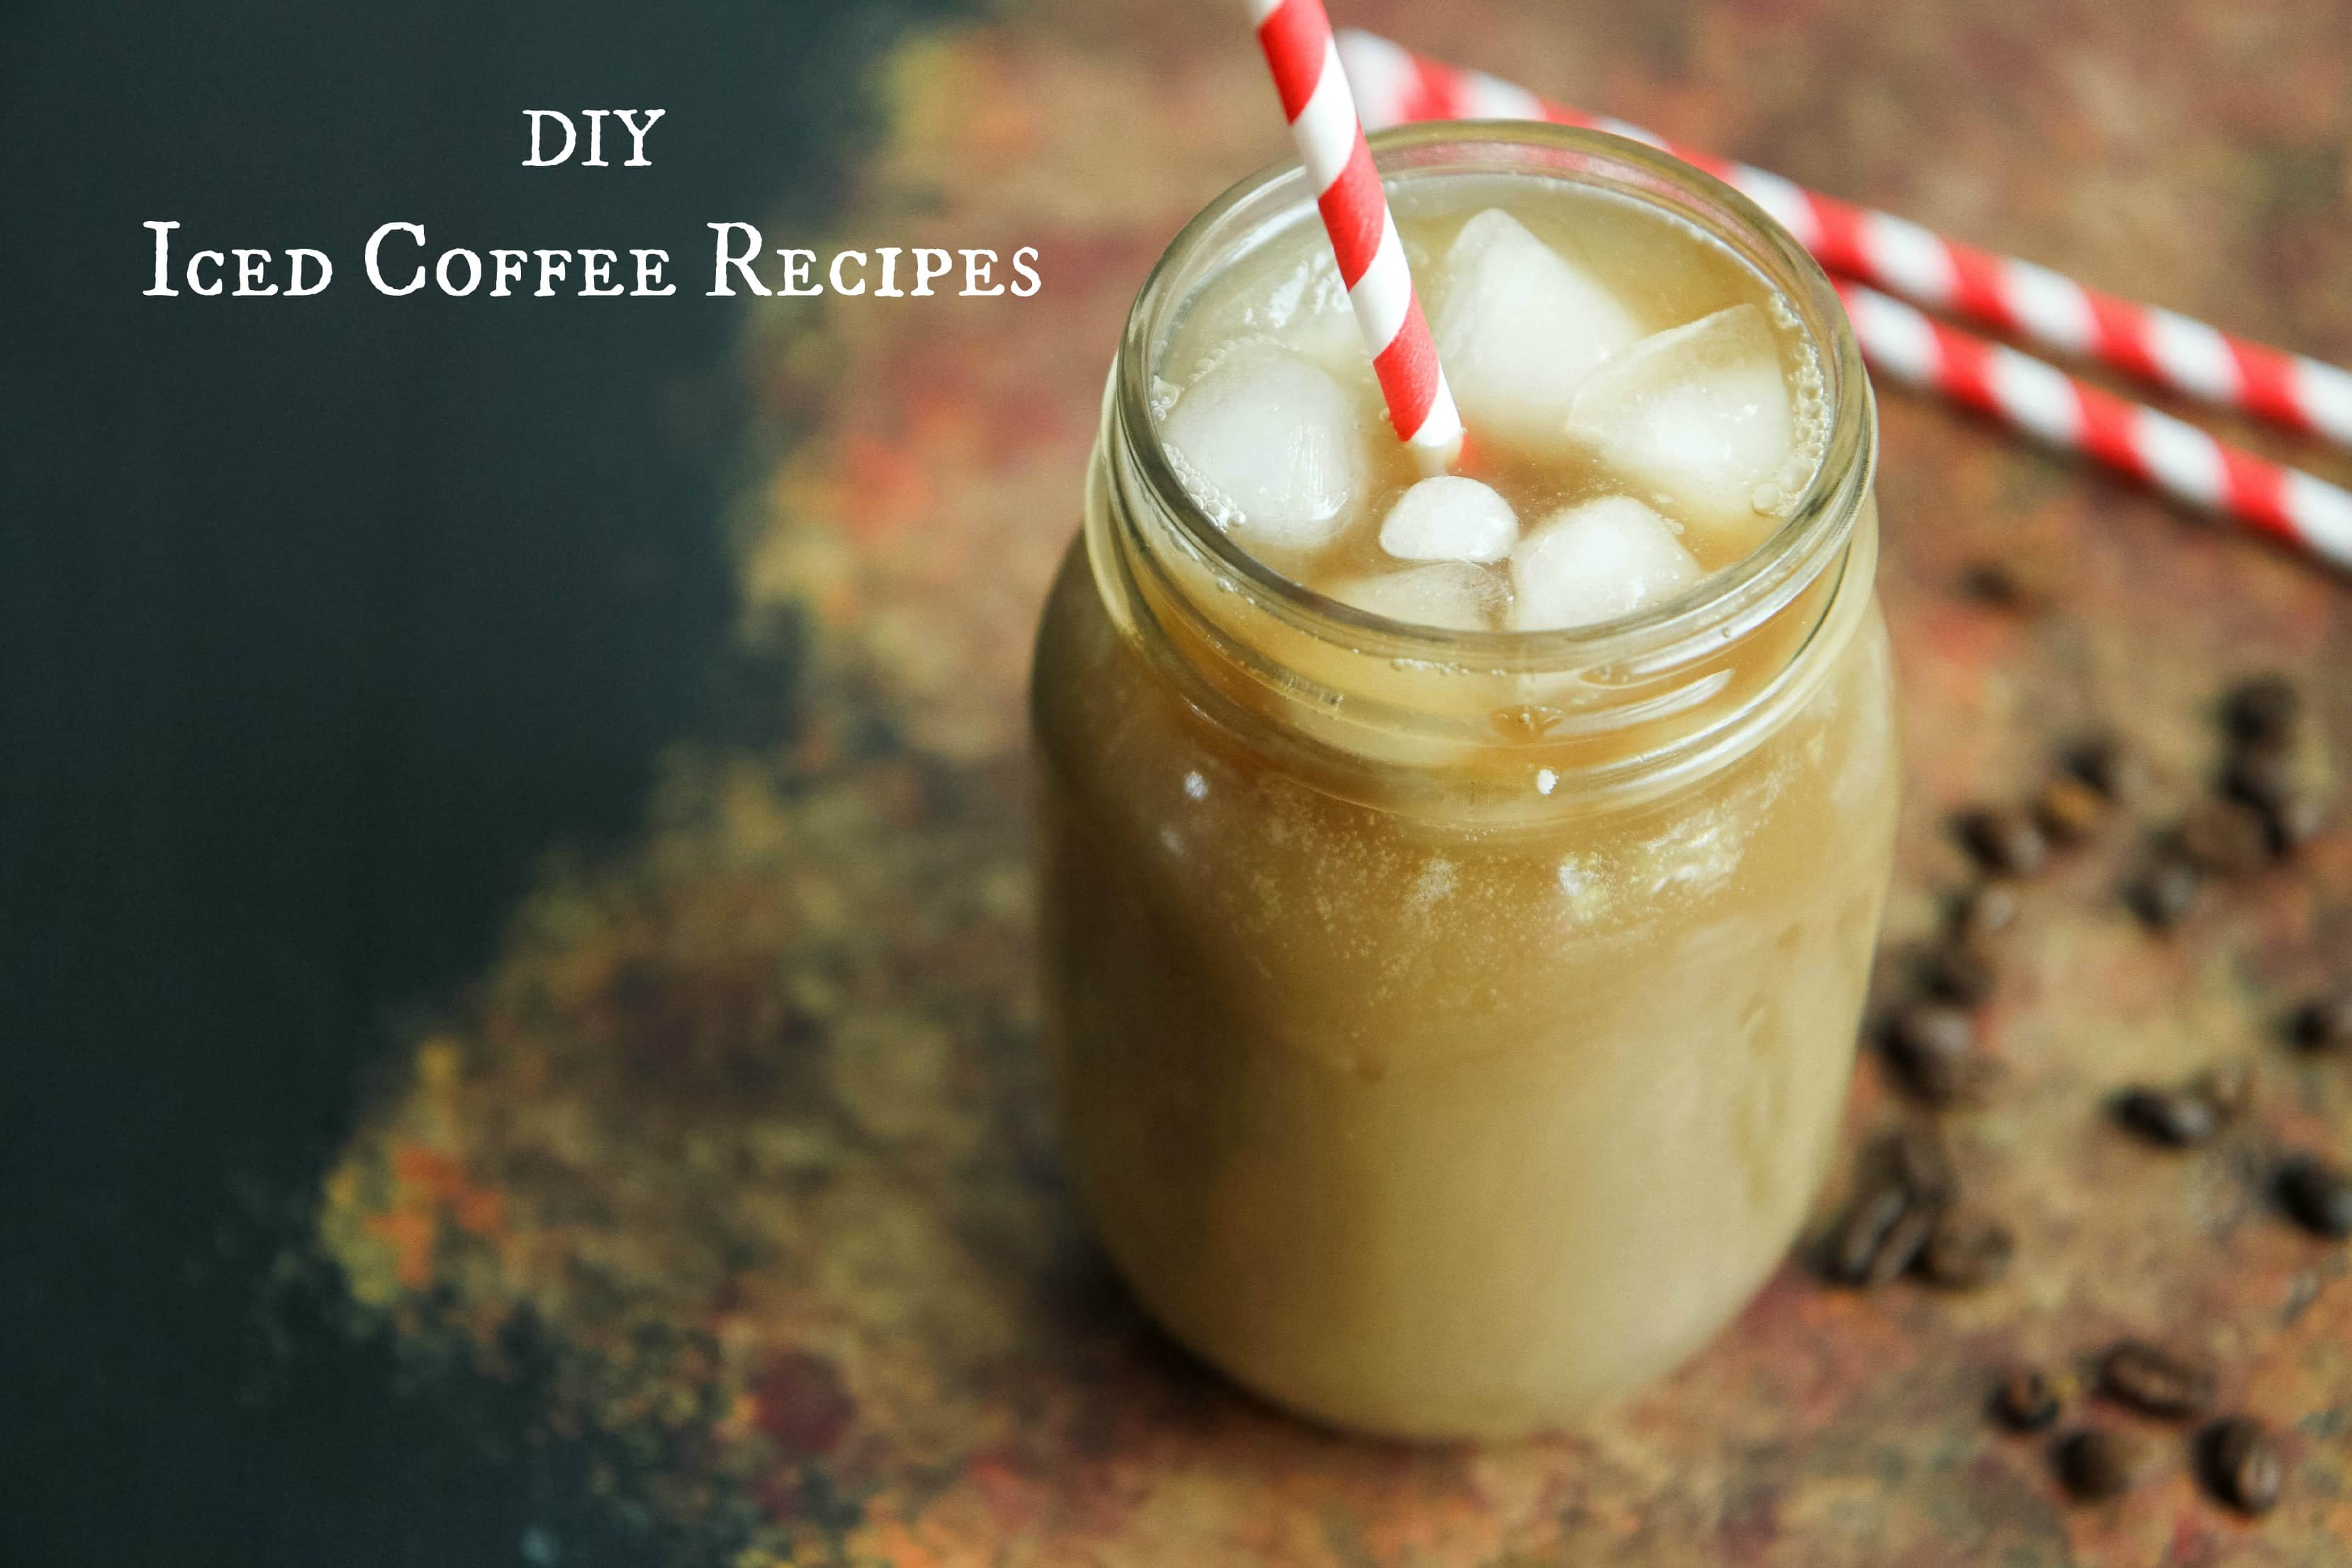 DIY Iced Coffee Recipes